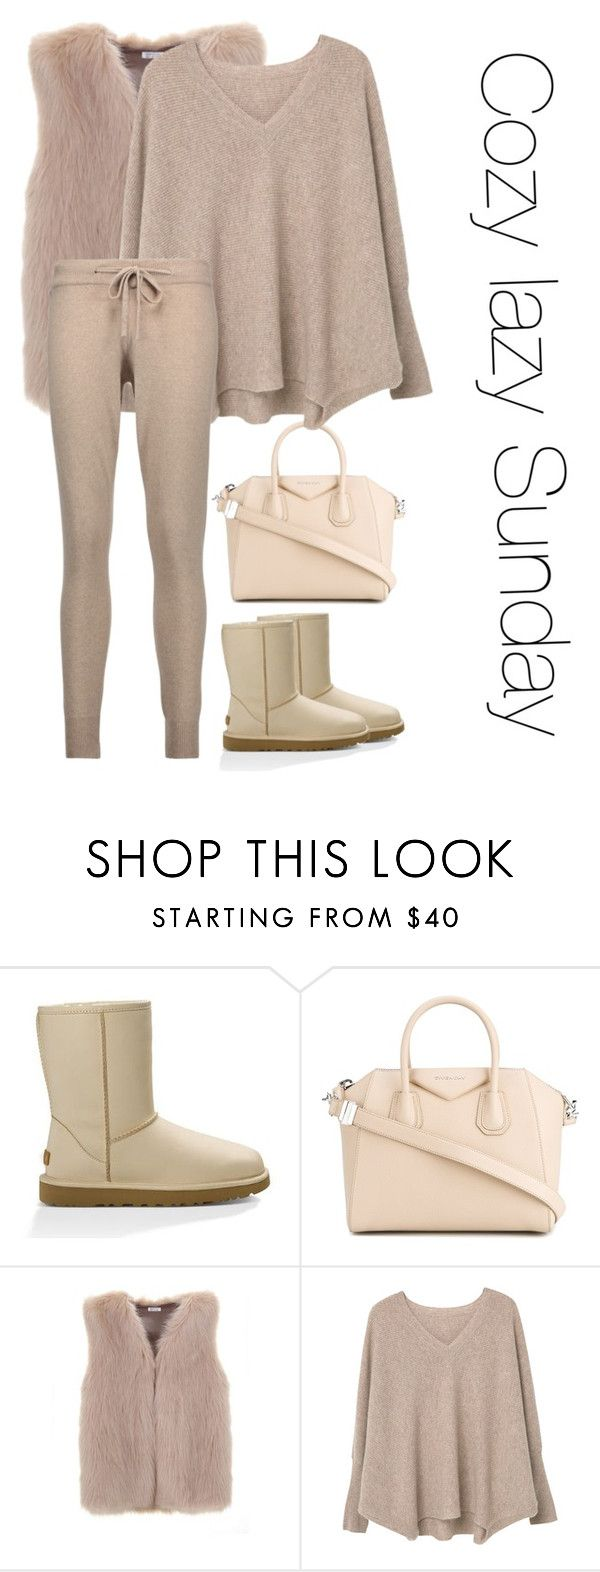 """""""Cozy Sunday"""" by pana-canaj on Polyvore featuring moda, UGG, Givenchy, MANGO e Chinti and Parker"""